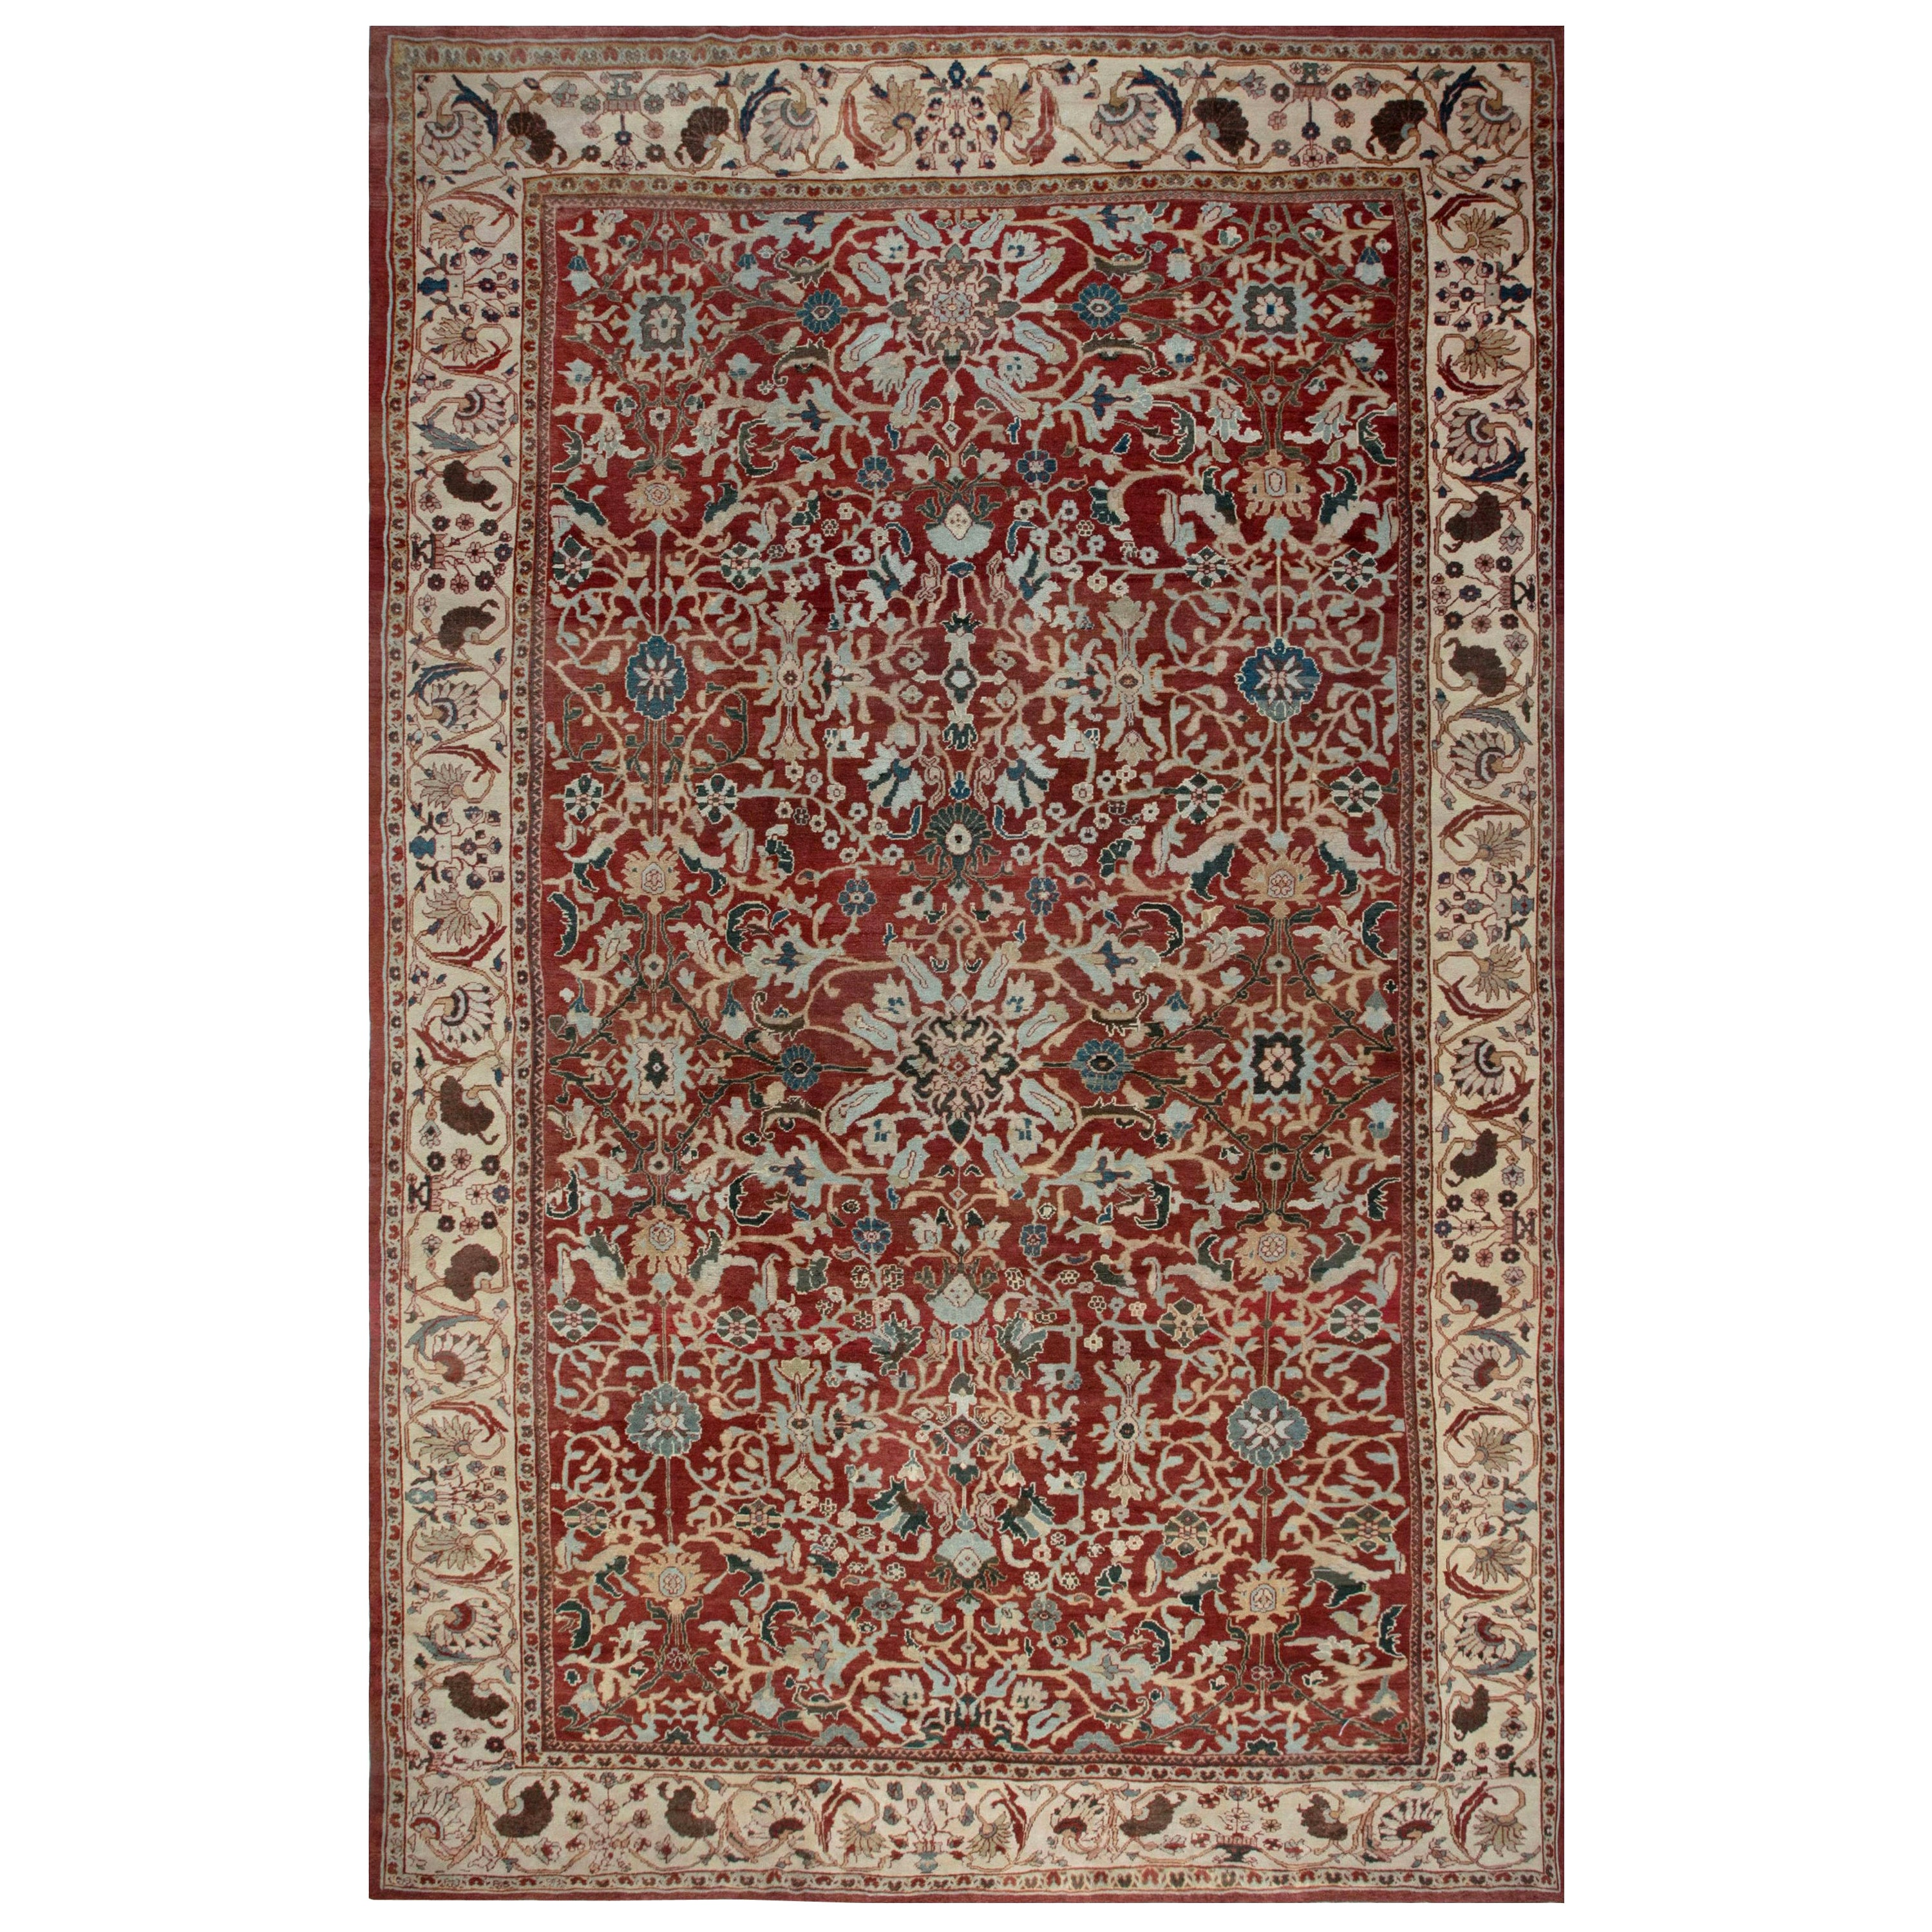 Antique Persian Sultanabad Red, White and Blue Handwoven Wool Rug